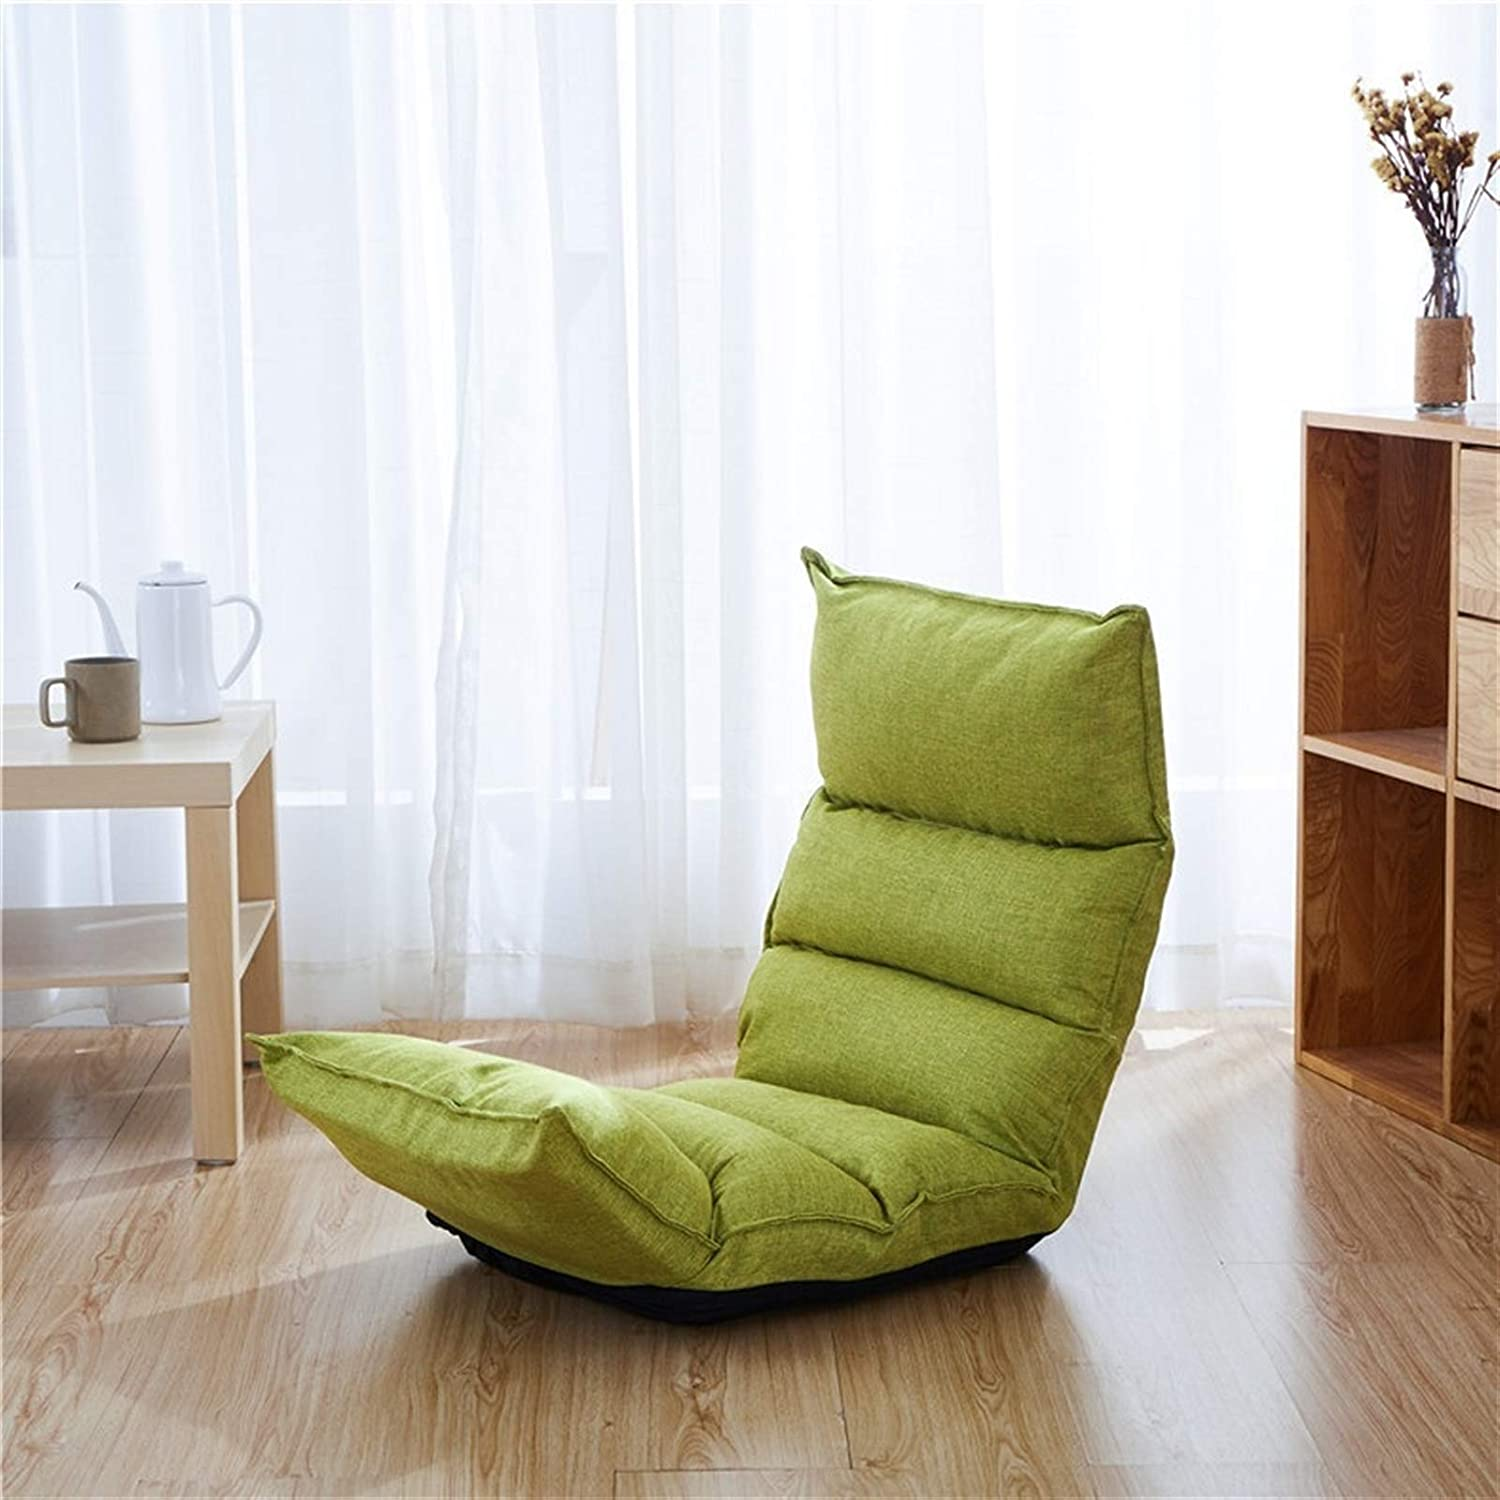 DSLE Folding Bean Bag Safety and trust Chair Sale Special Price Dormitory Lazy Sofas Balcon